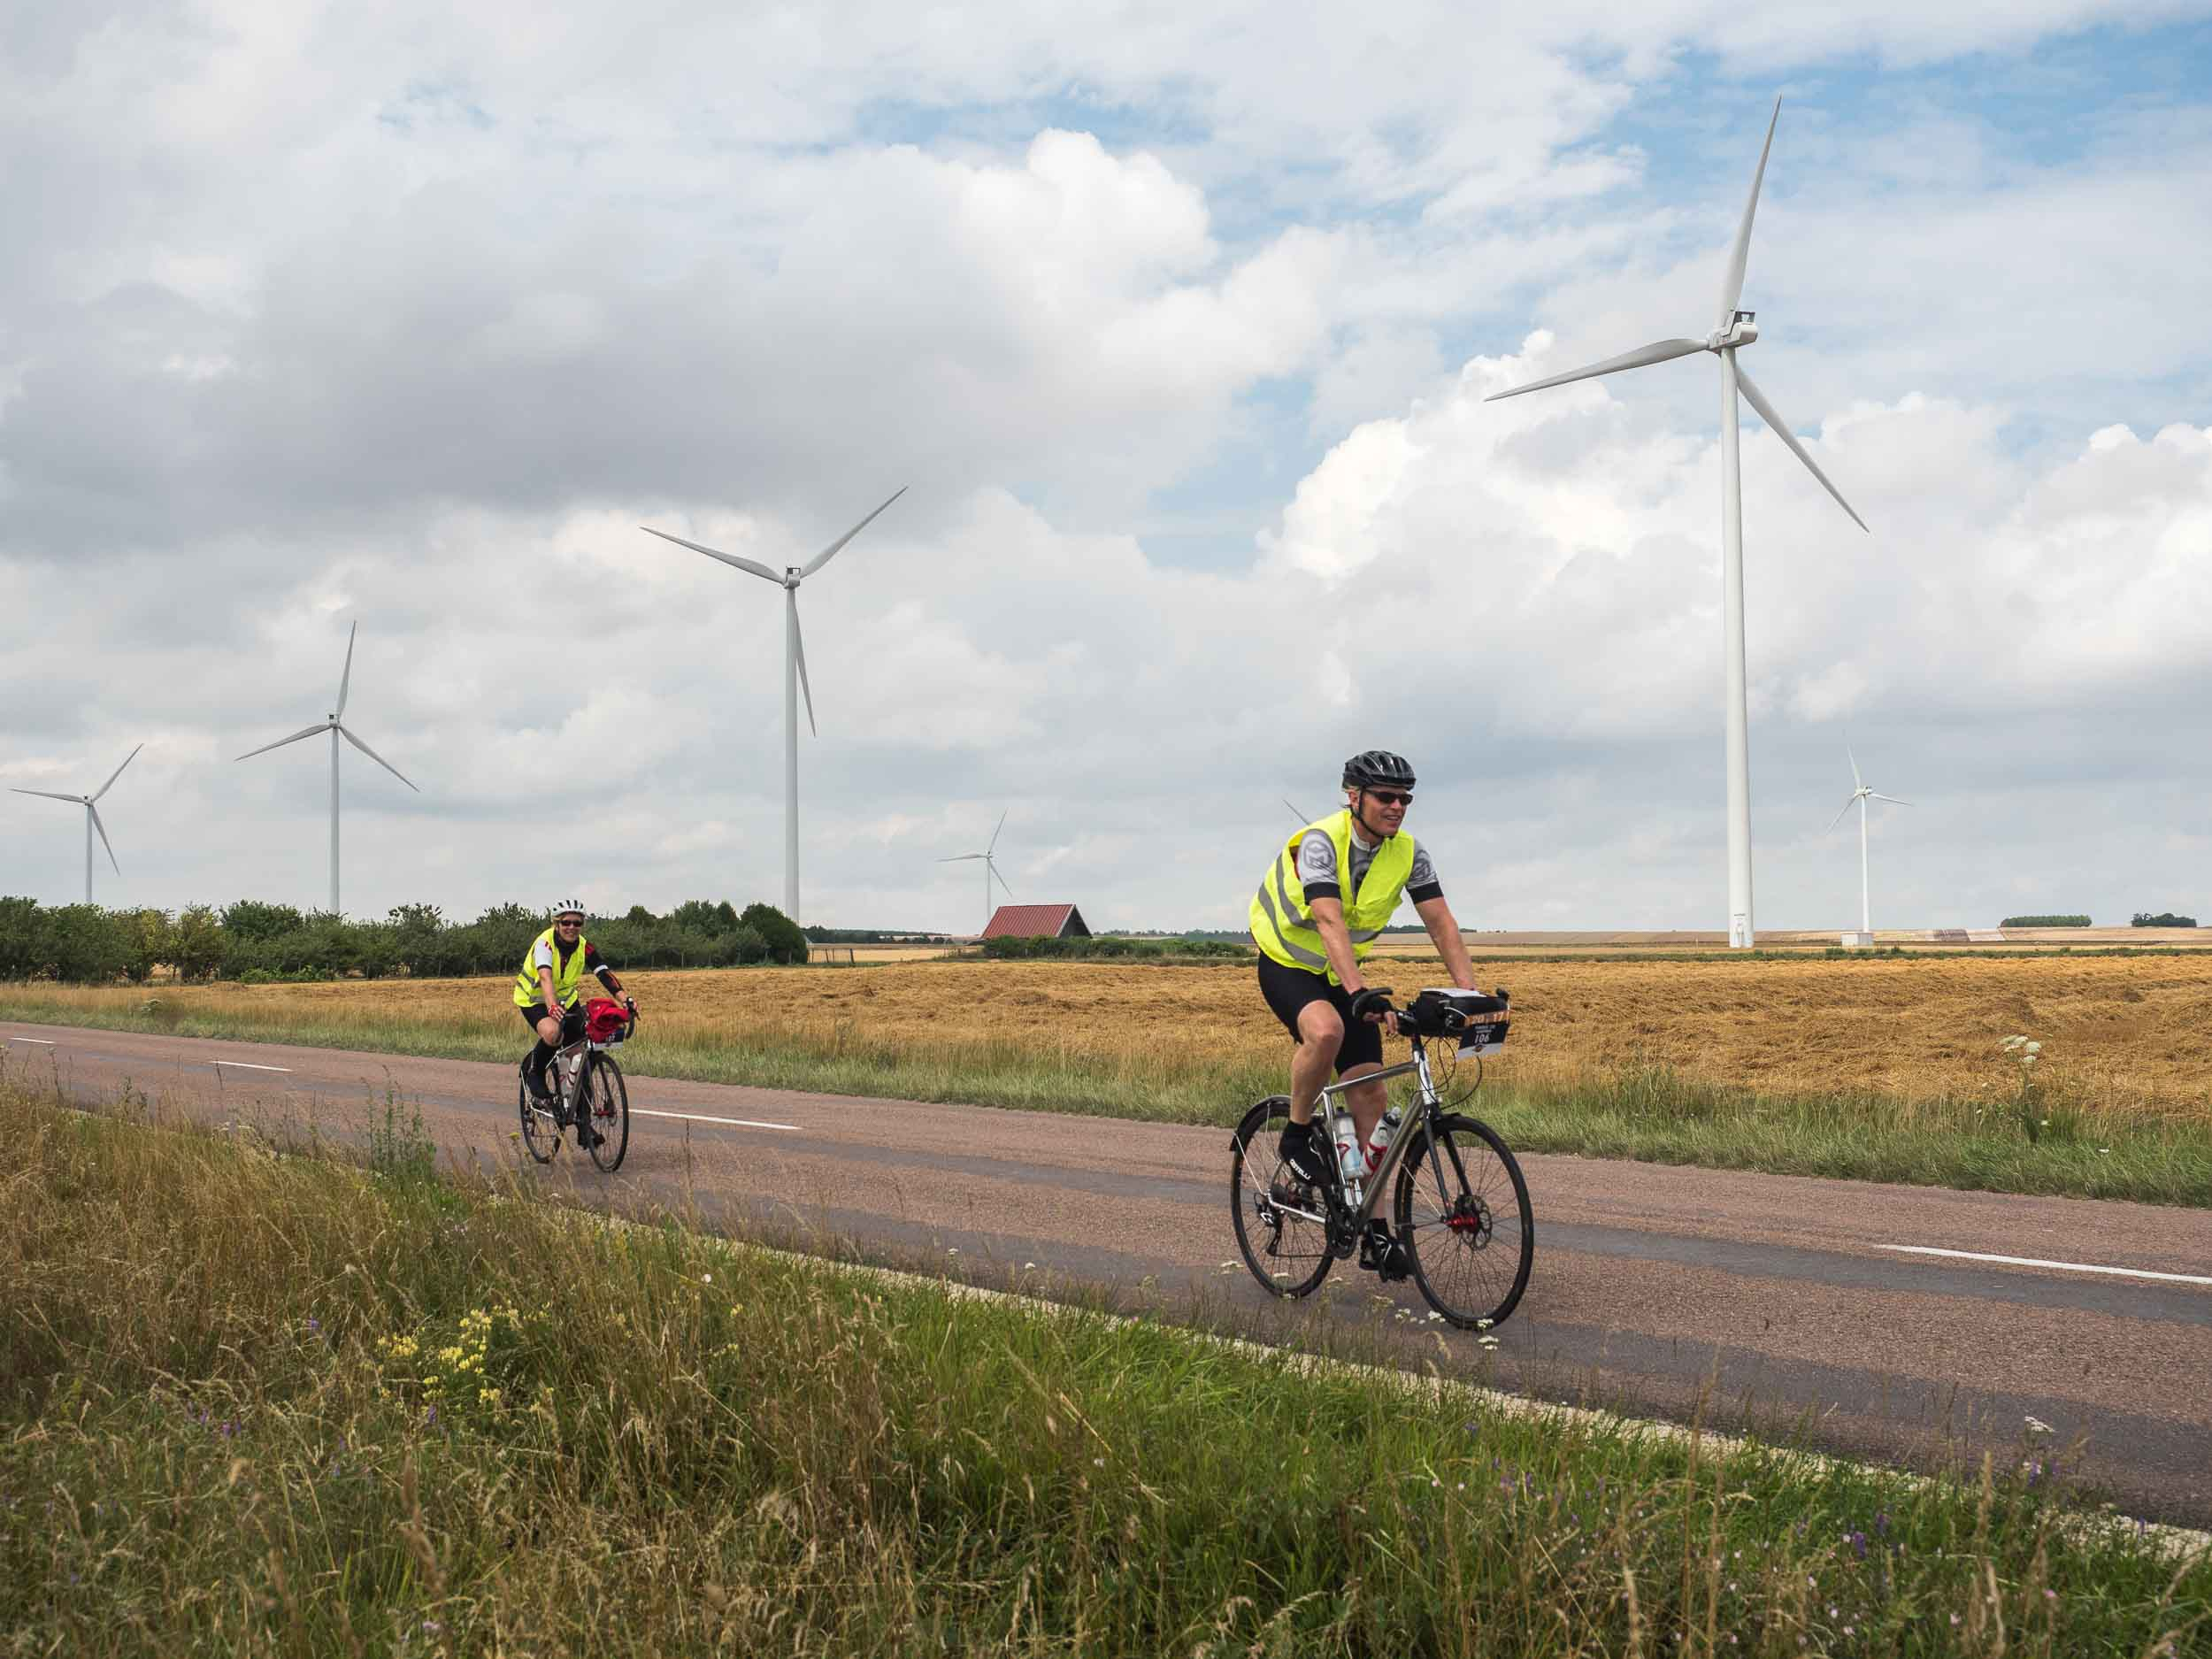 tda-cycling-paris-freiburg-wind-turbines.jpg